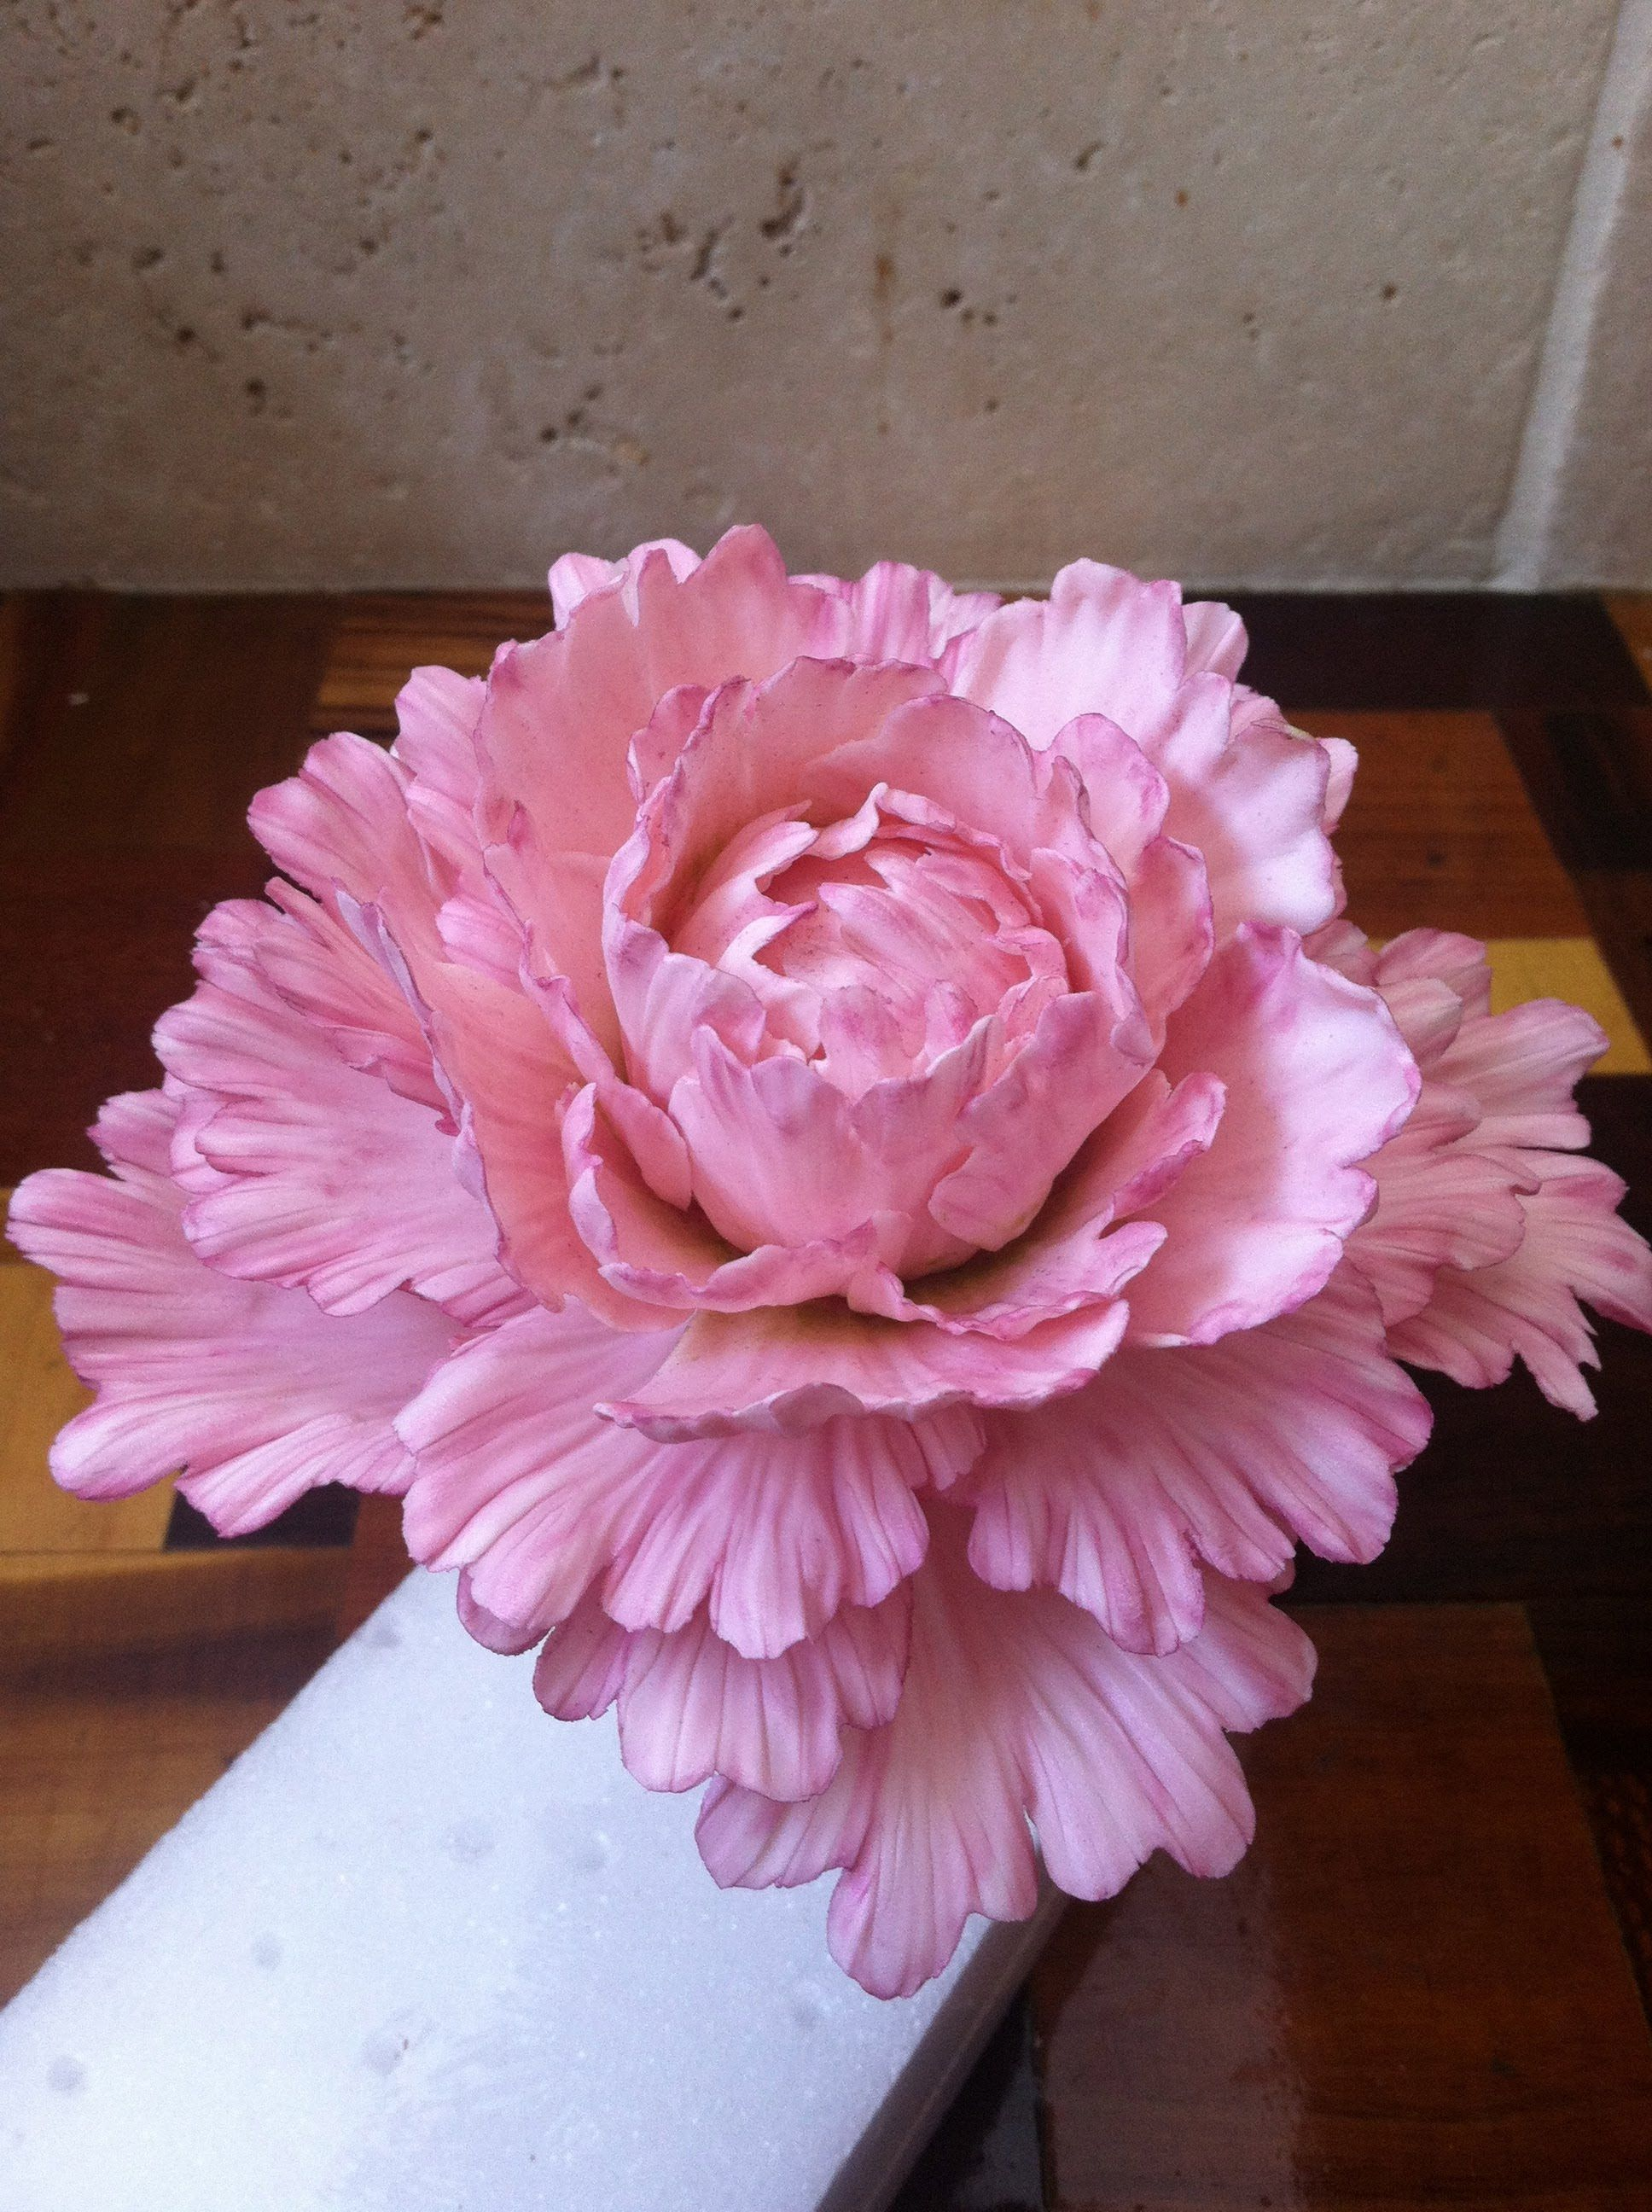 Free Video Cake Decorating Class On How To Make A Gum Paste Peony Video  Produced